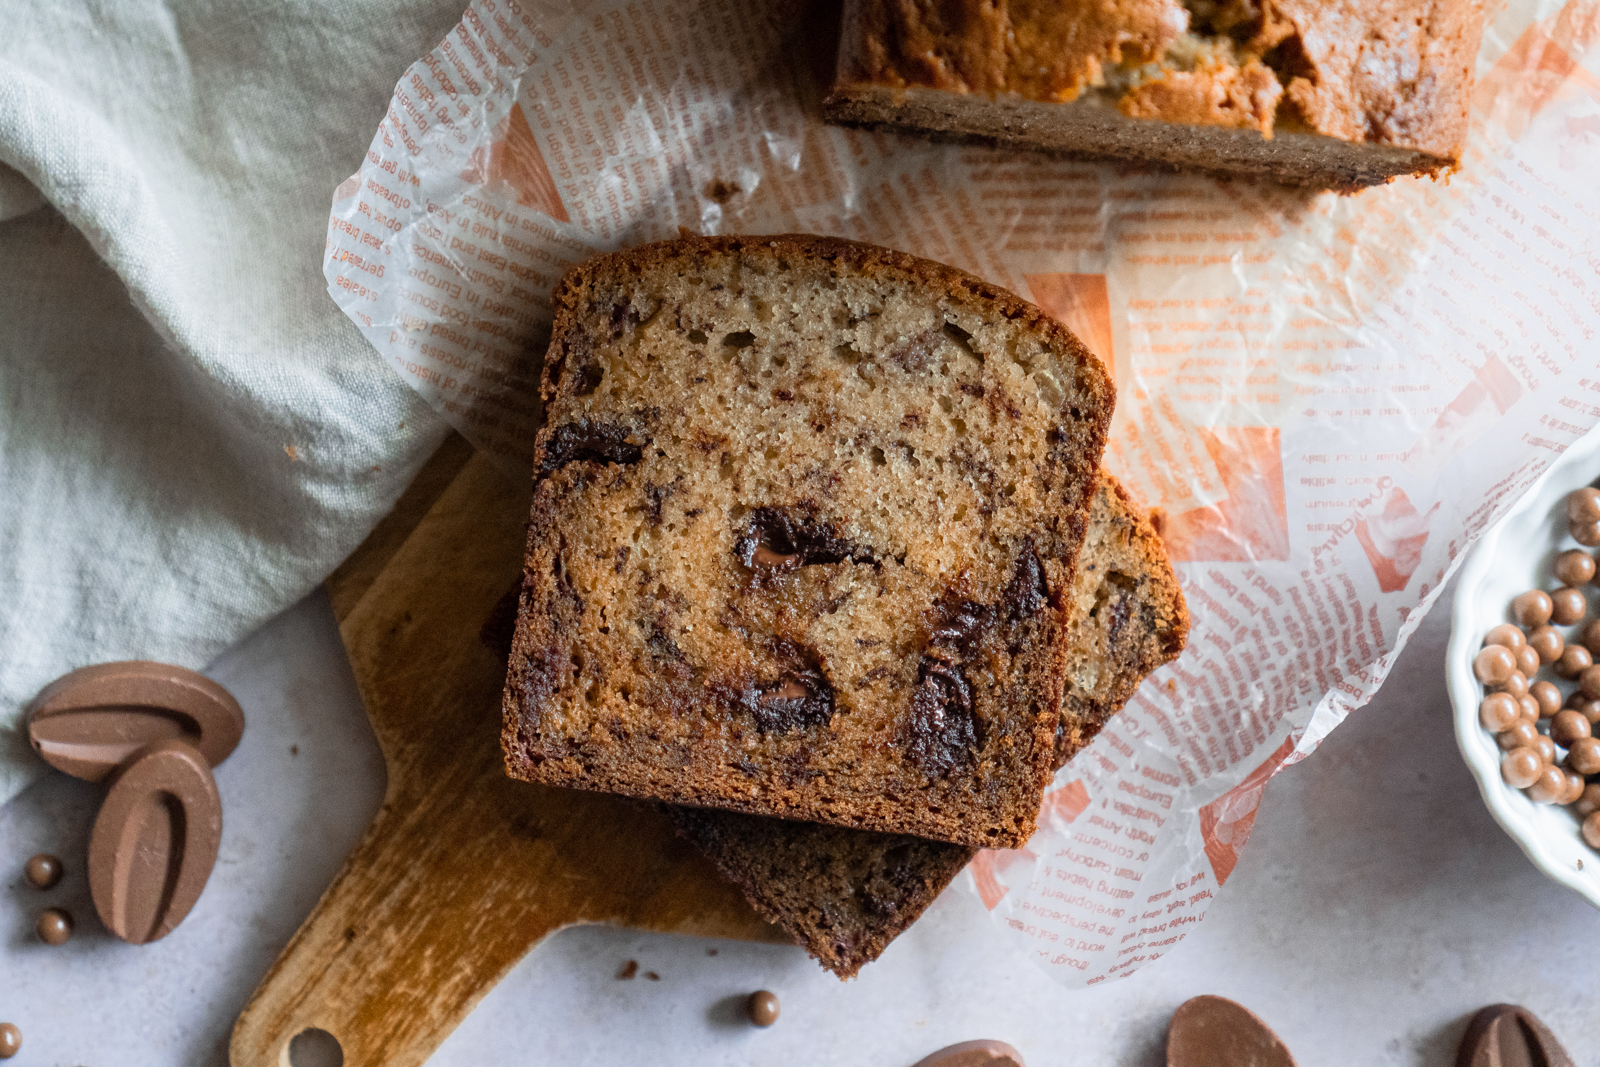 banana bread with chocolate in slice